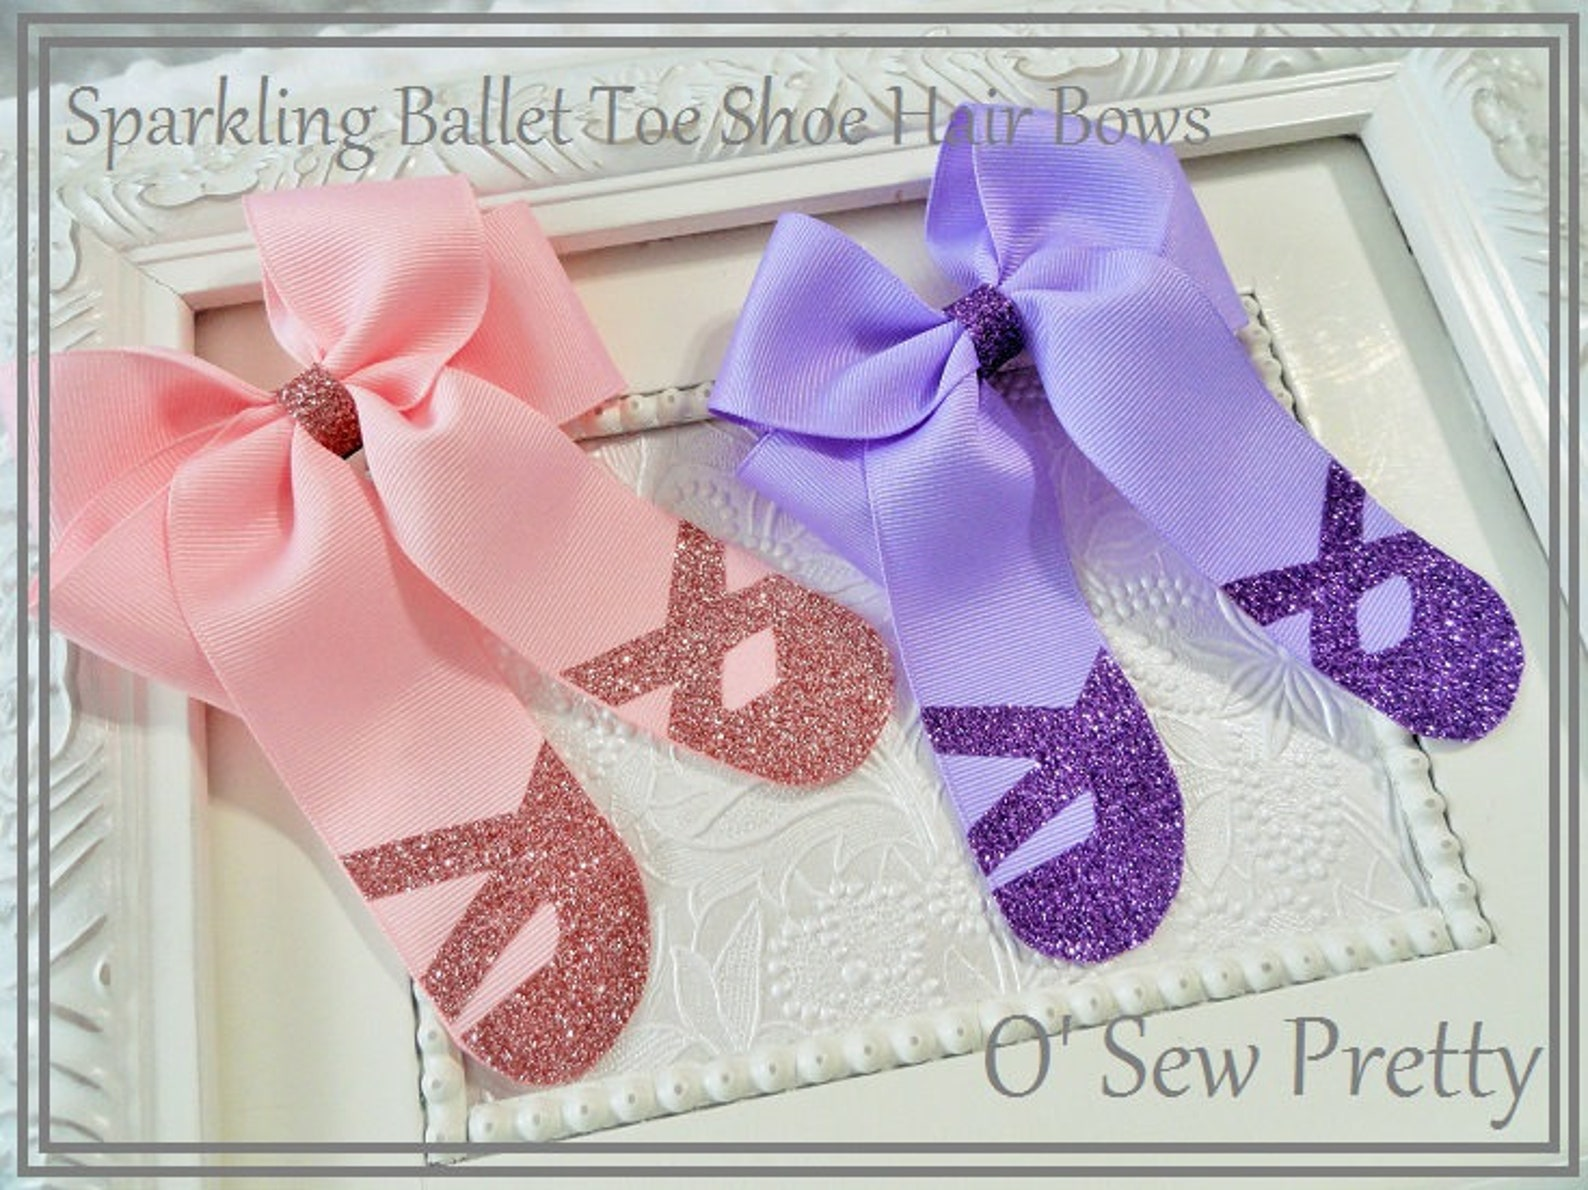 ballet hair bows, purple ballet hair bows, pink ballet toe shoe hair bows, dance hair bows, sparkling ballerina hair bow, ballet